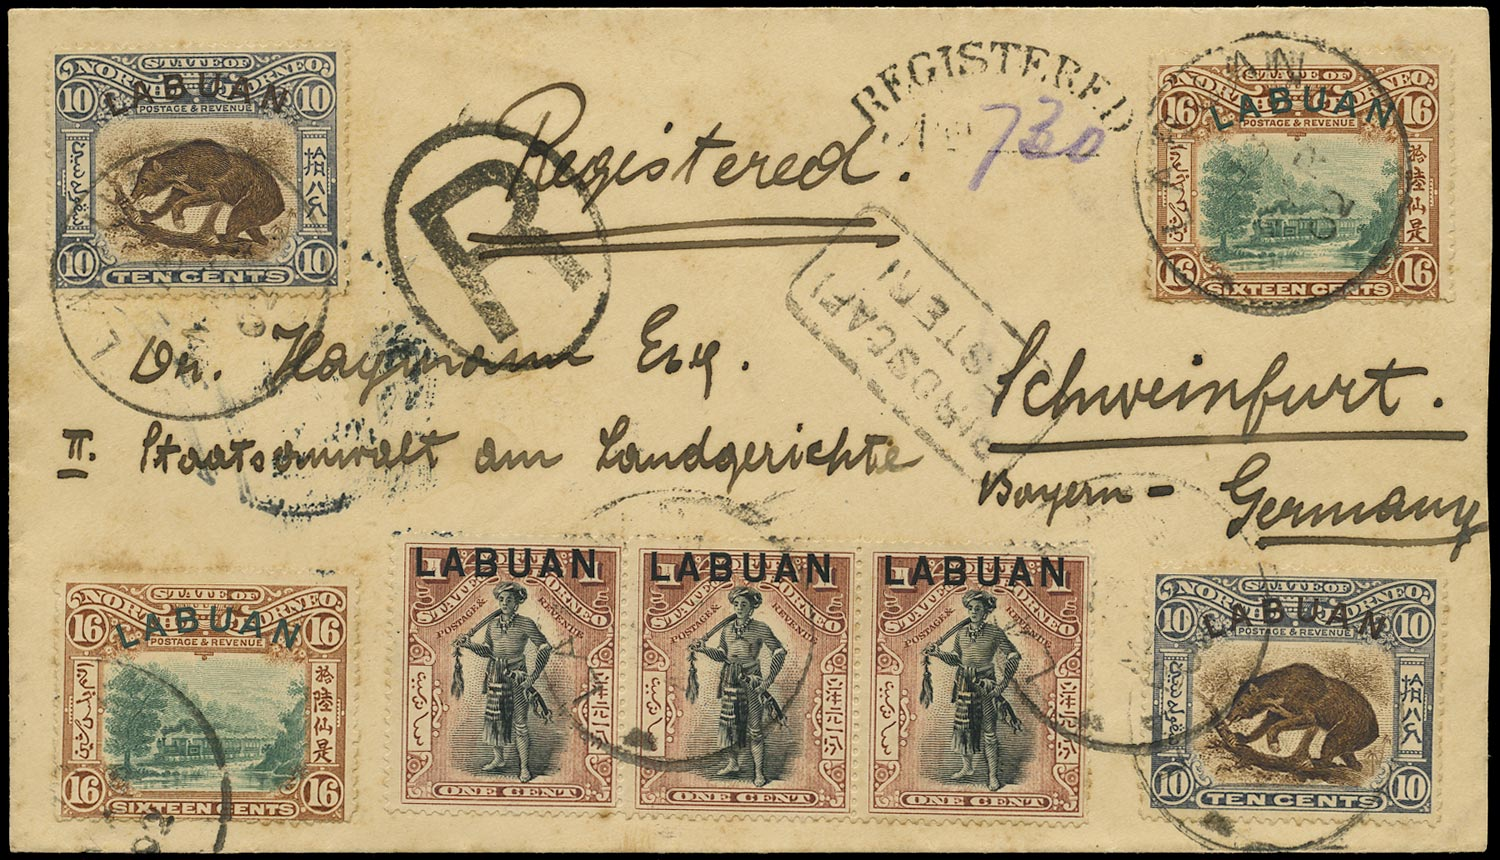 LABUAN 1899  SG89b, 115, 116 Cover registered to Germany including 1900-02 10c Sun Bear and 16c Train